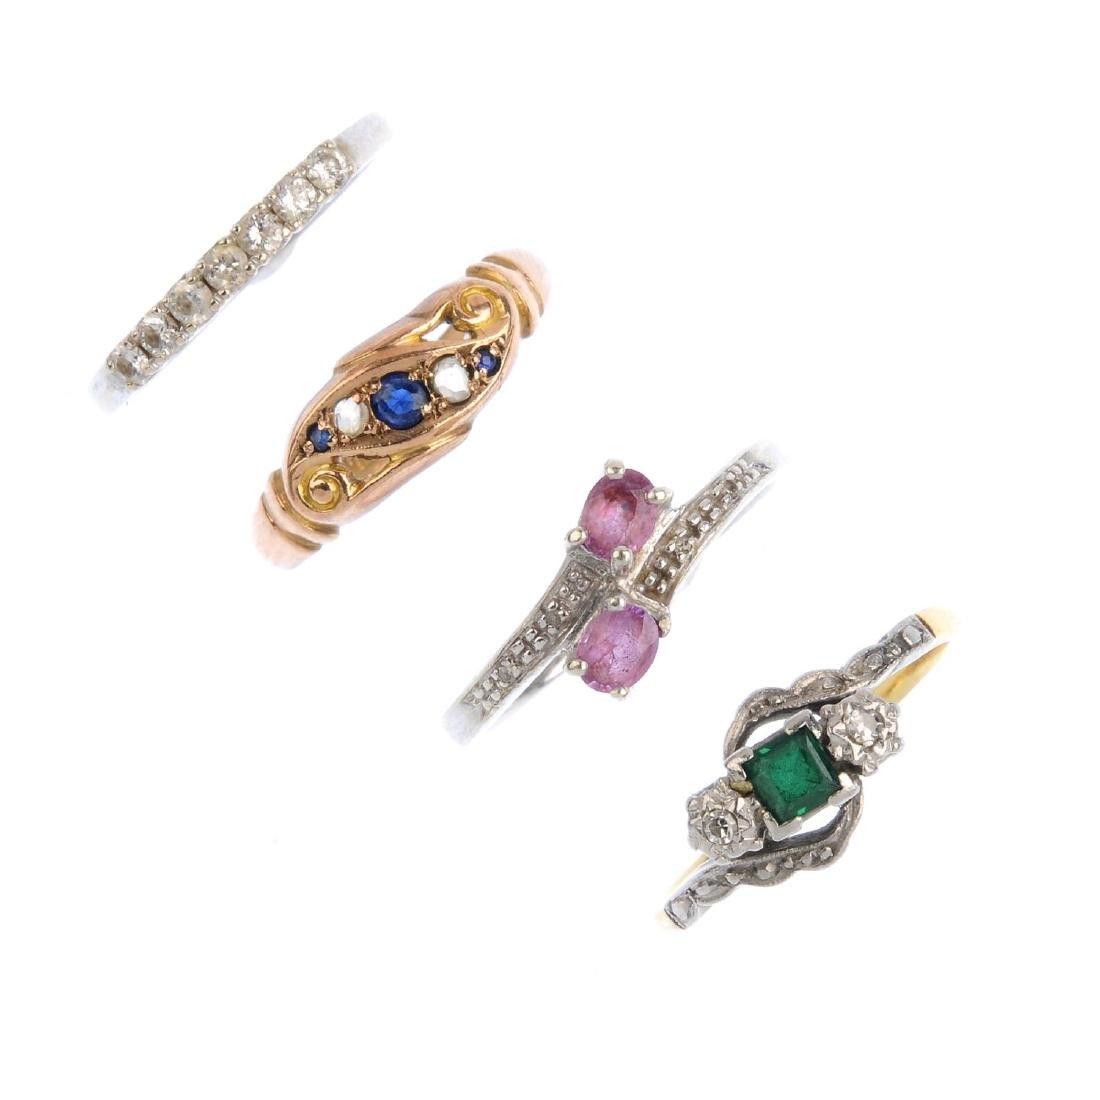 Four gem-set rings. To include an early 20th century